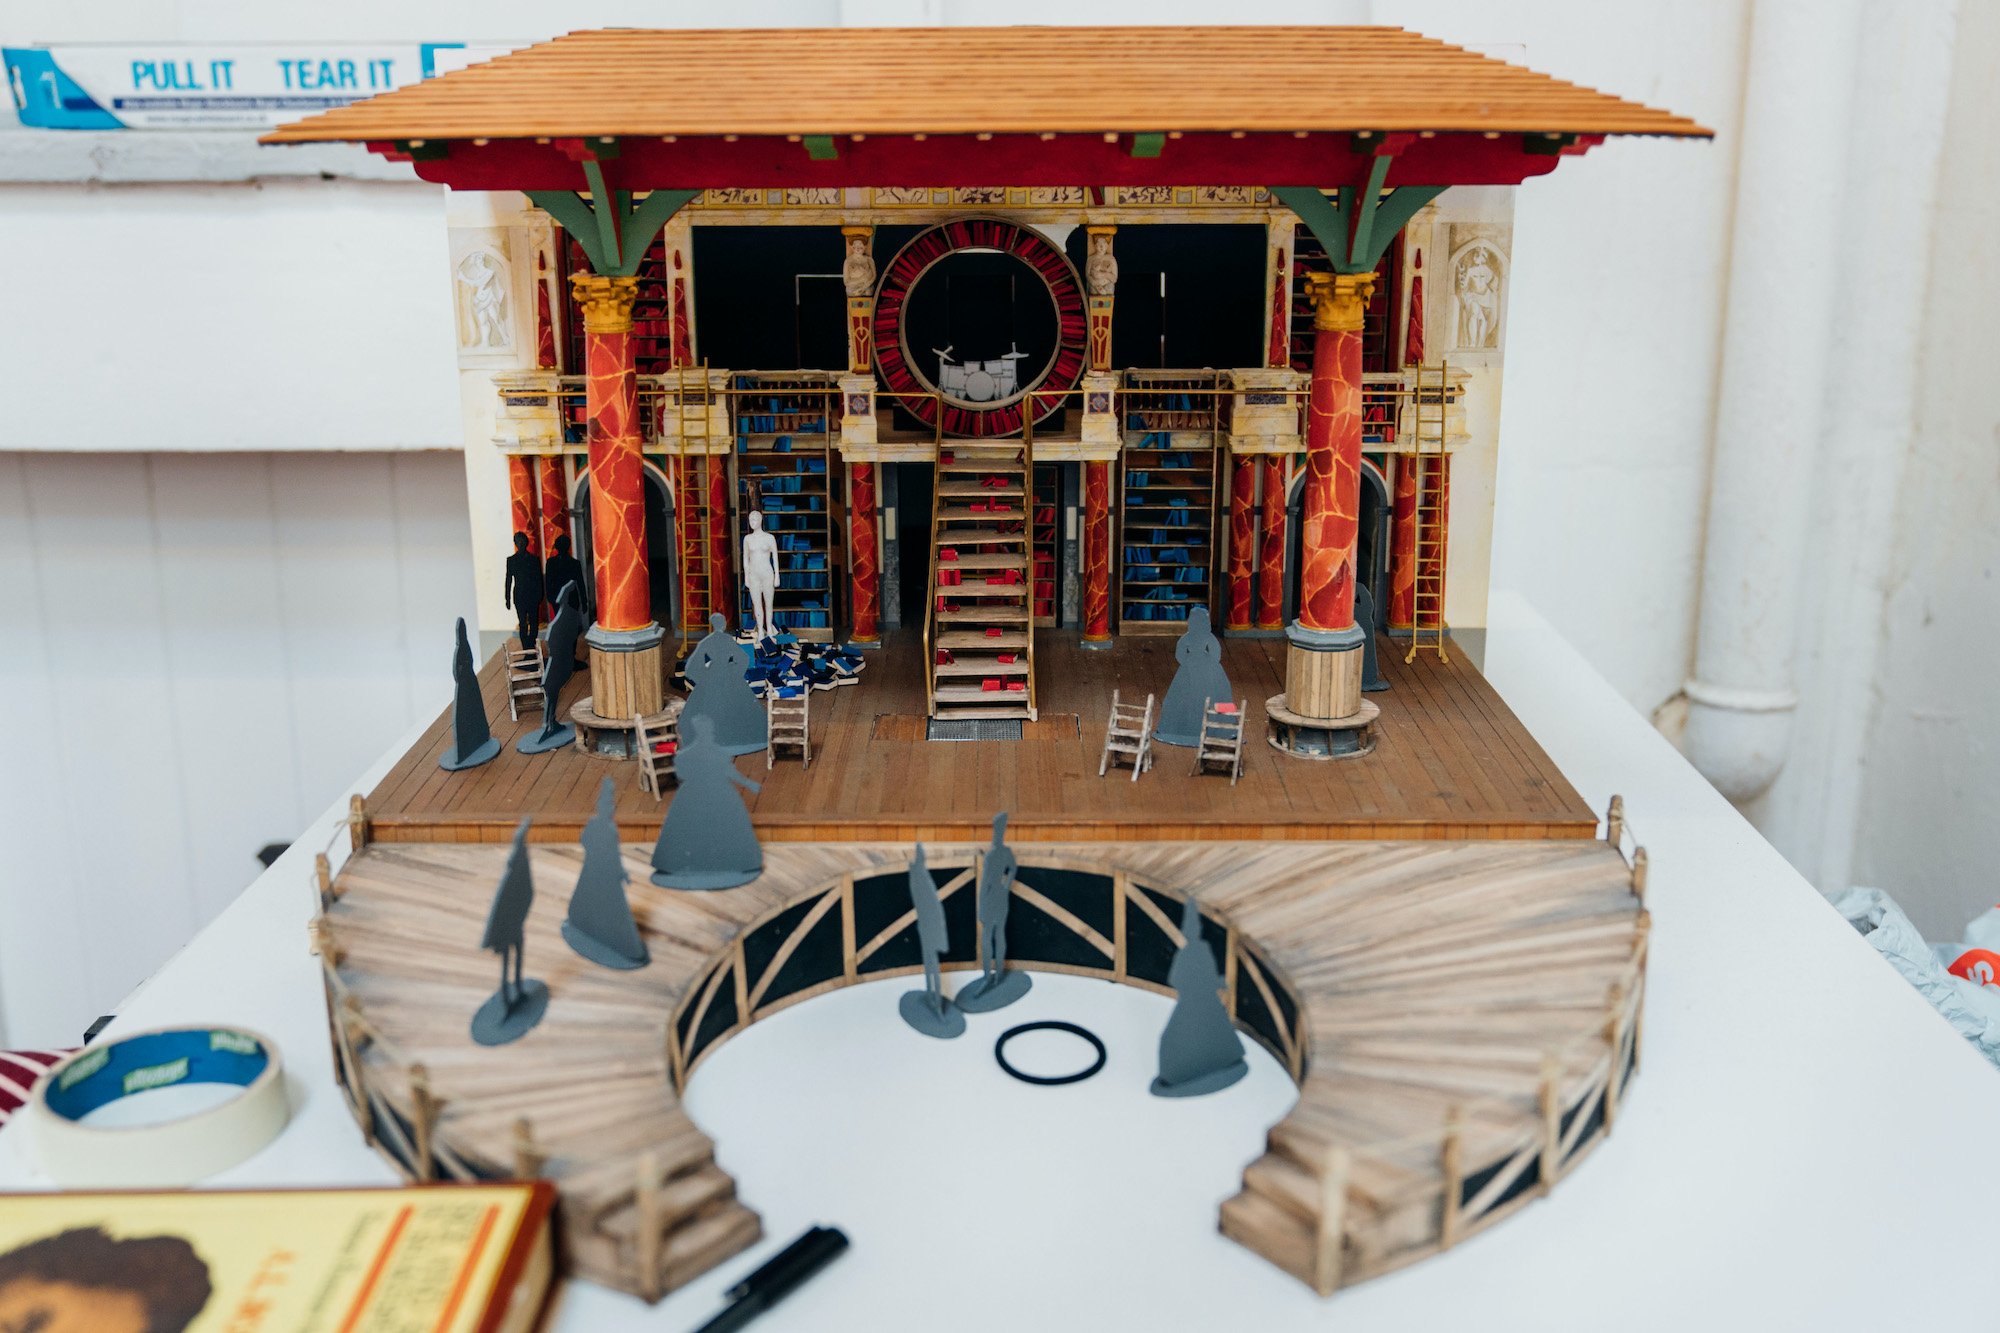 A mini set of a theatre which shows a wooden roof, wooden stage, steps, pillars and cardboard cut-out characters